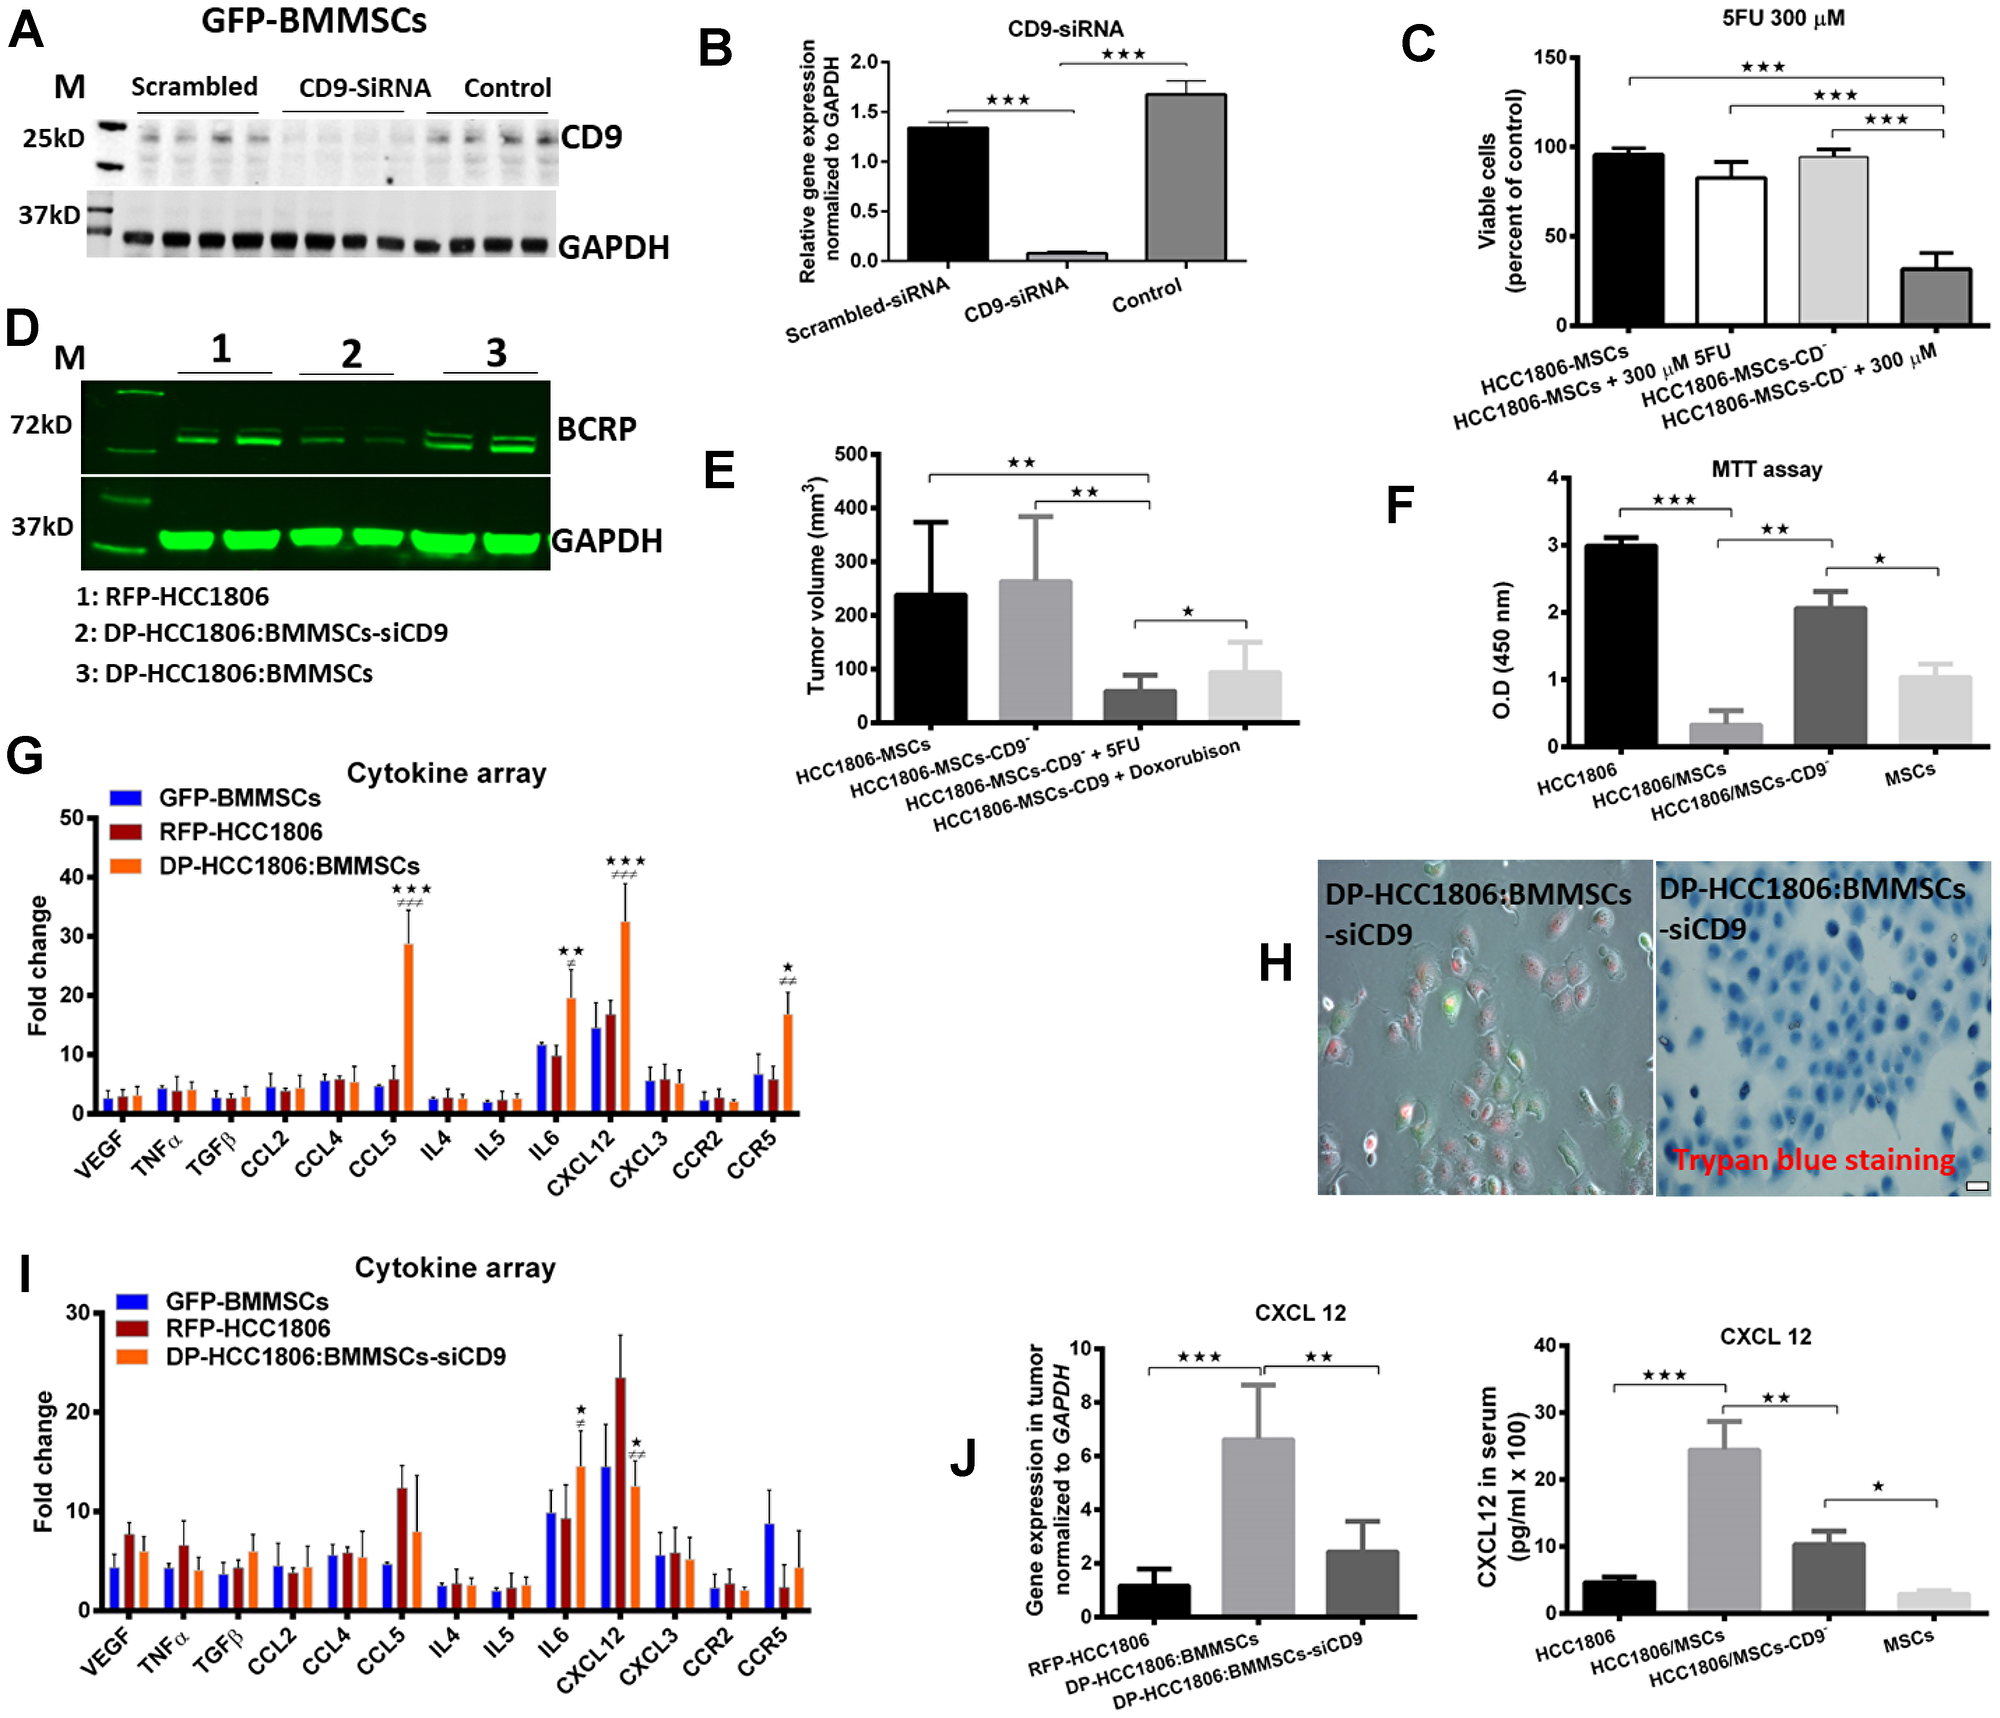 BMMSCs-CD9 siRNA knockdown in DP-HCC1806:BMMSC xenografts reduces chemotherapeutic resistance to 5FU and doxorubicin in vivo.